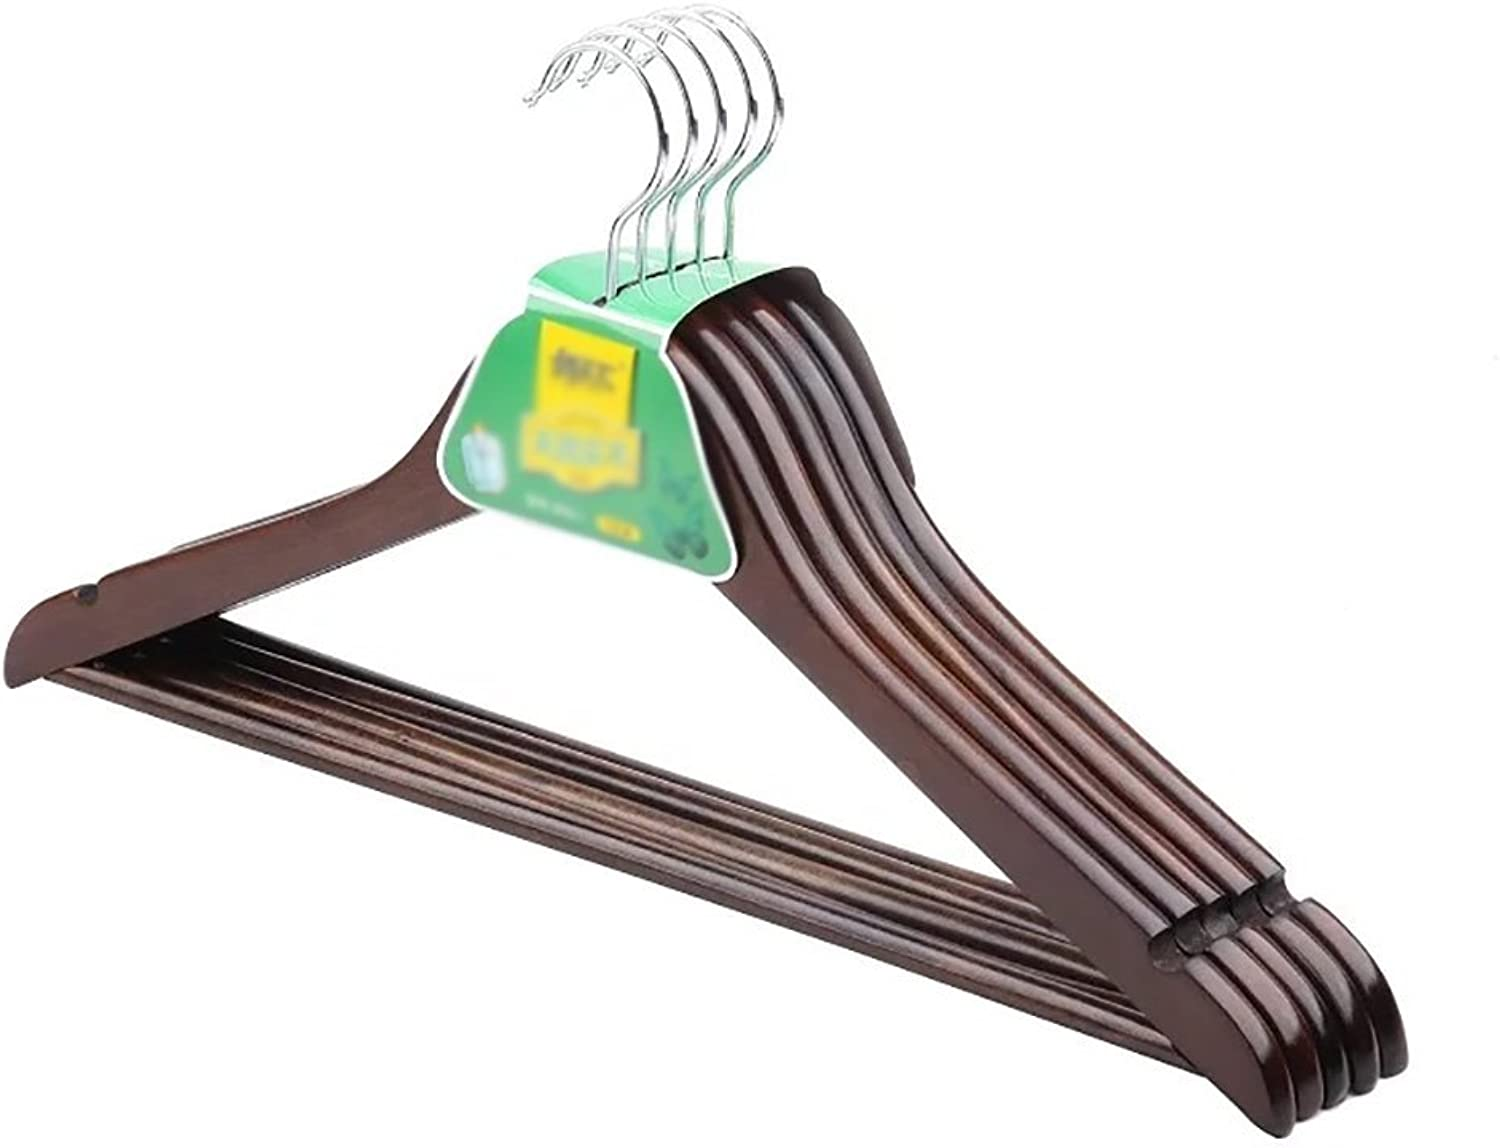 ZYL (10 Pieces) Wooden Hanger, Multifunctional High-Grade Solid Wood Suit Hanger with Non-Slip Grooves Classic Hangers (color   Brown, Size   44.5  25.5cm)